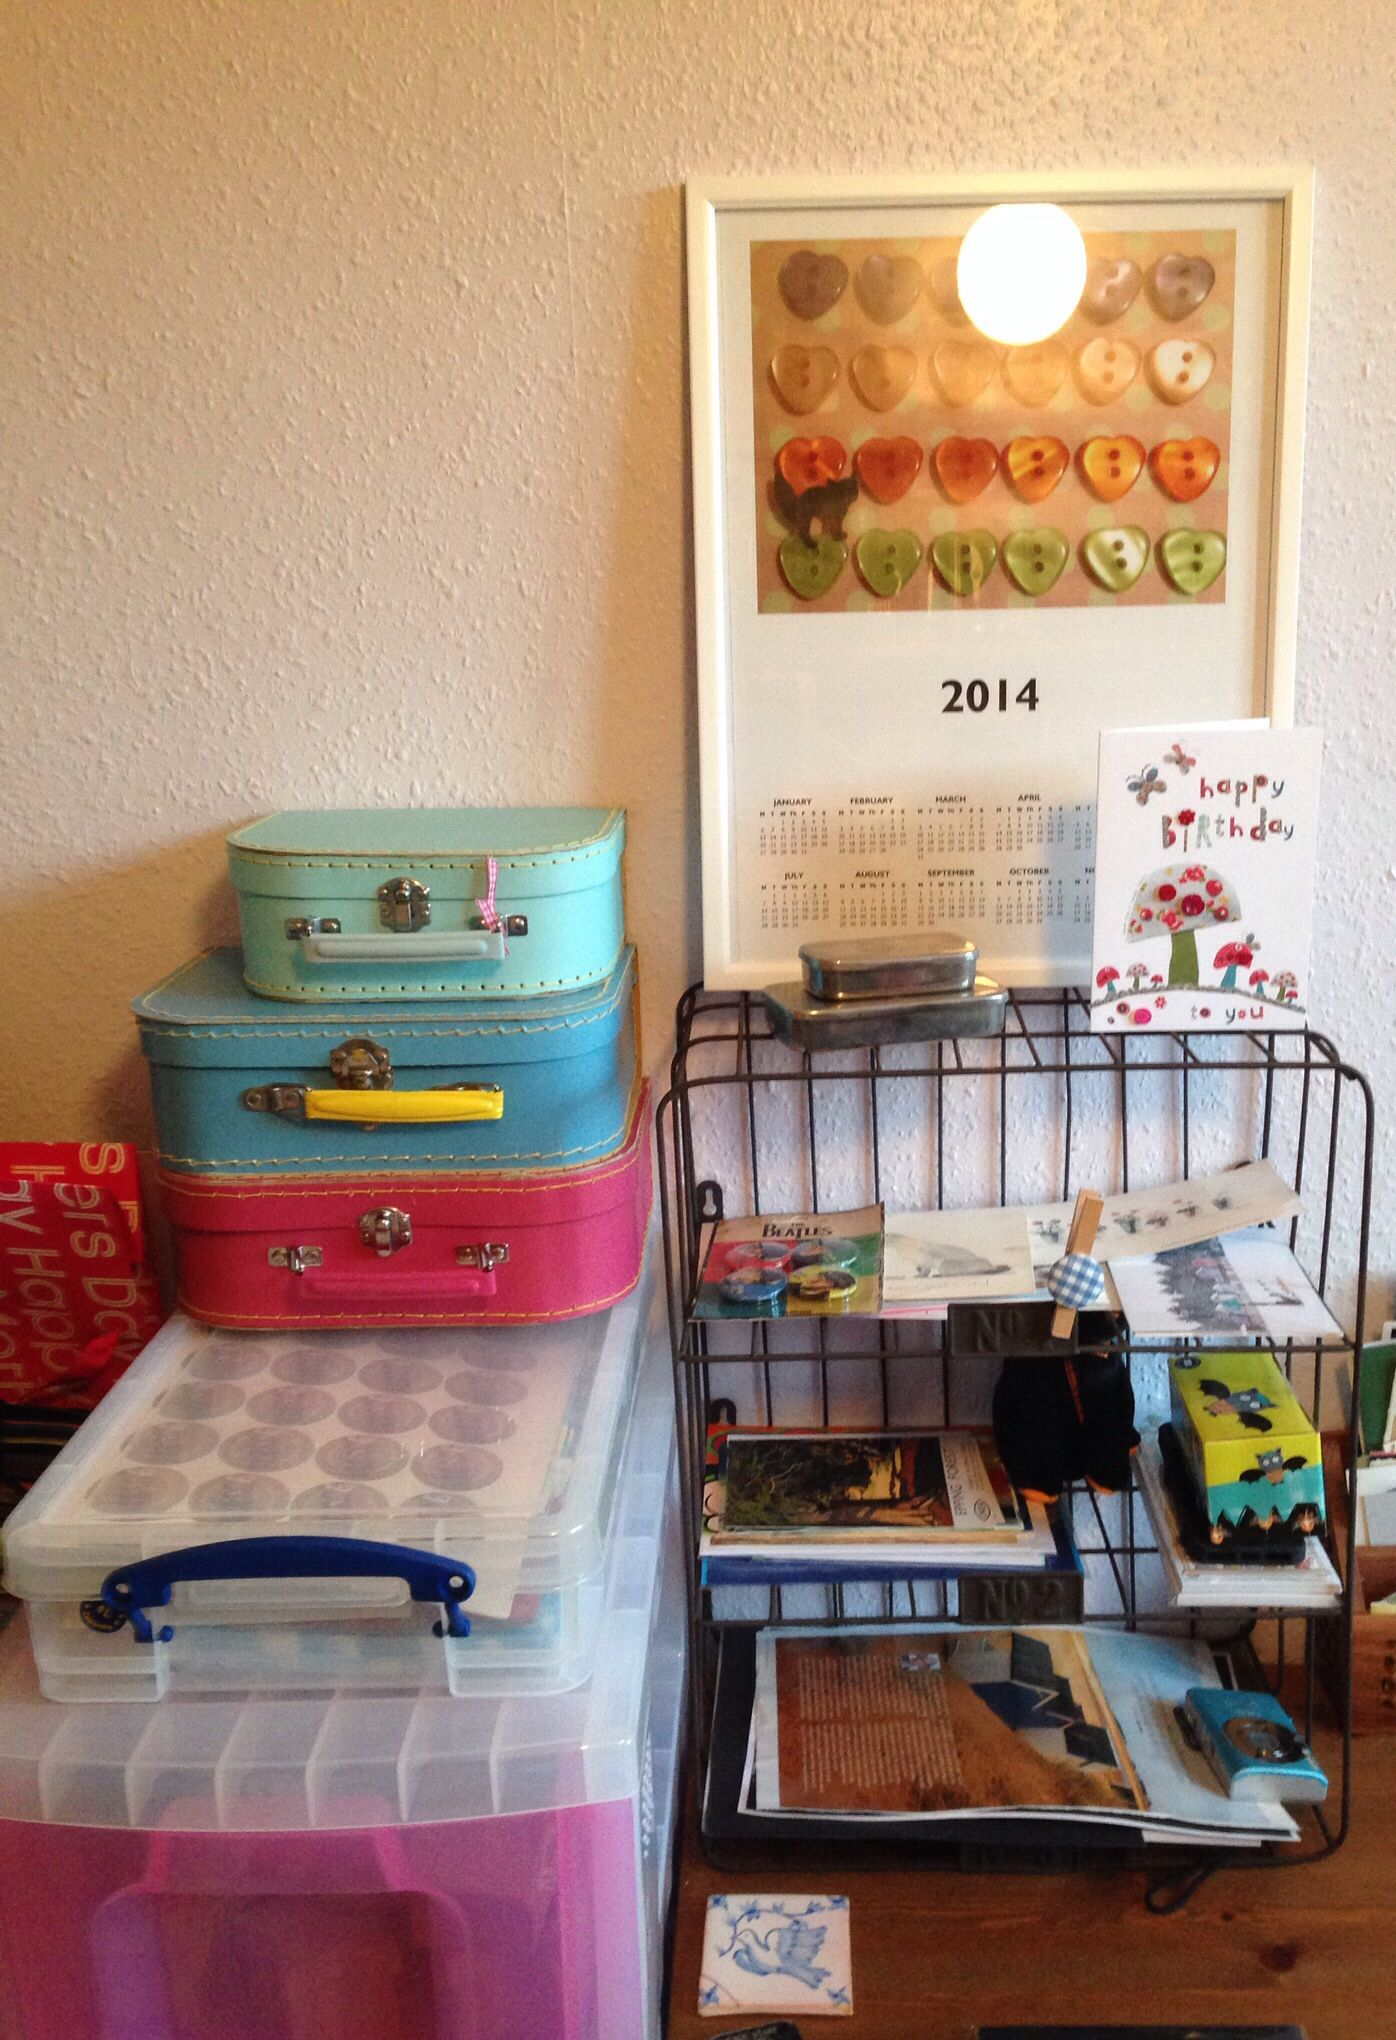 Tidy workroom! | Home decor, Tidying, Decor